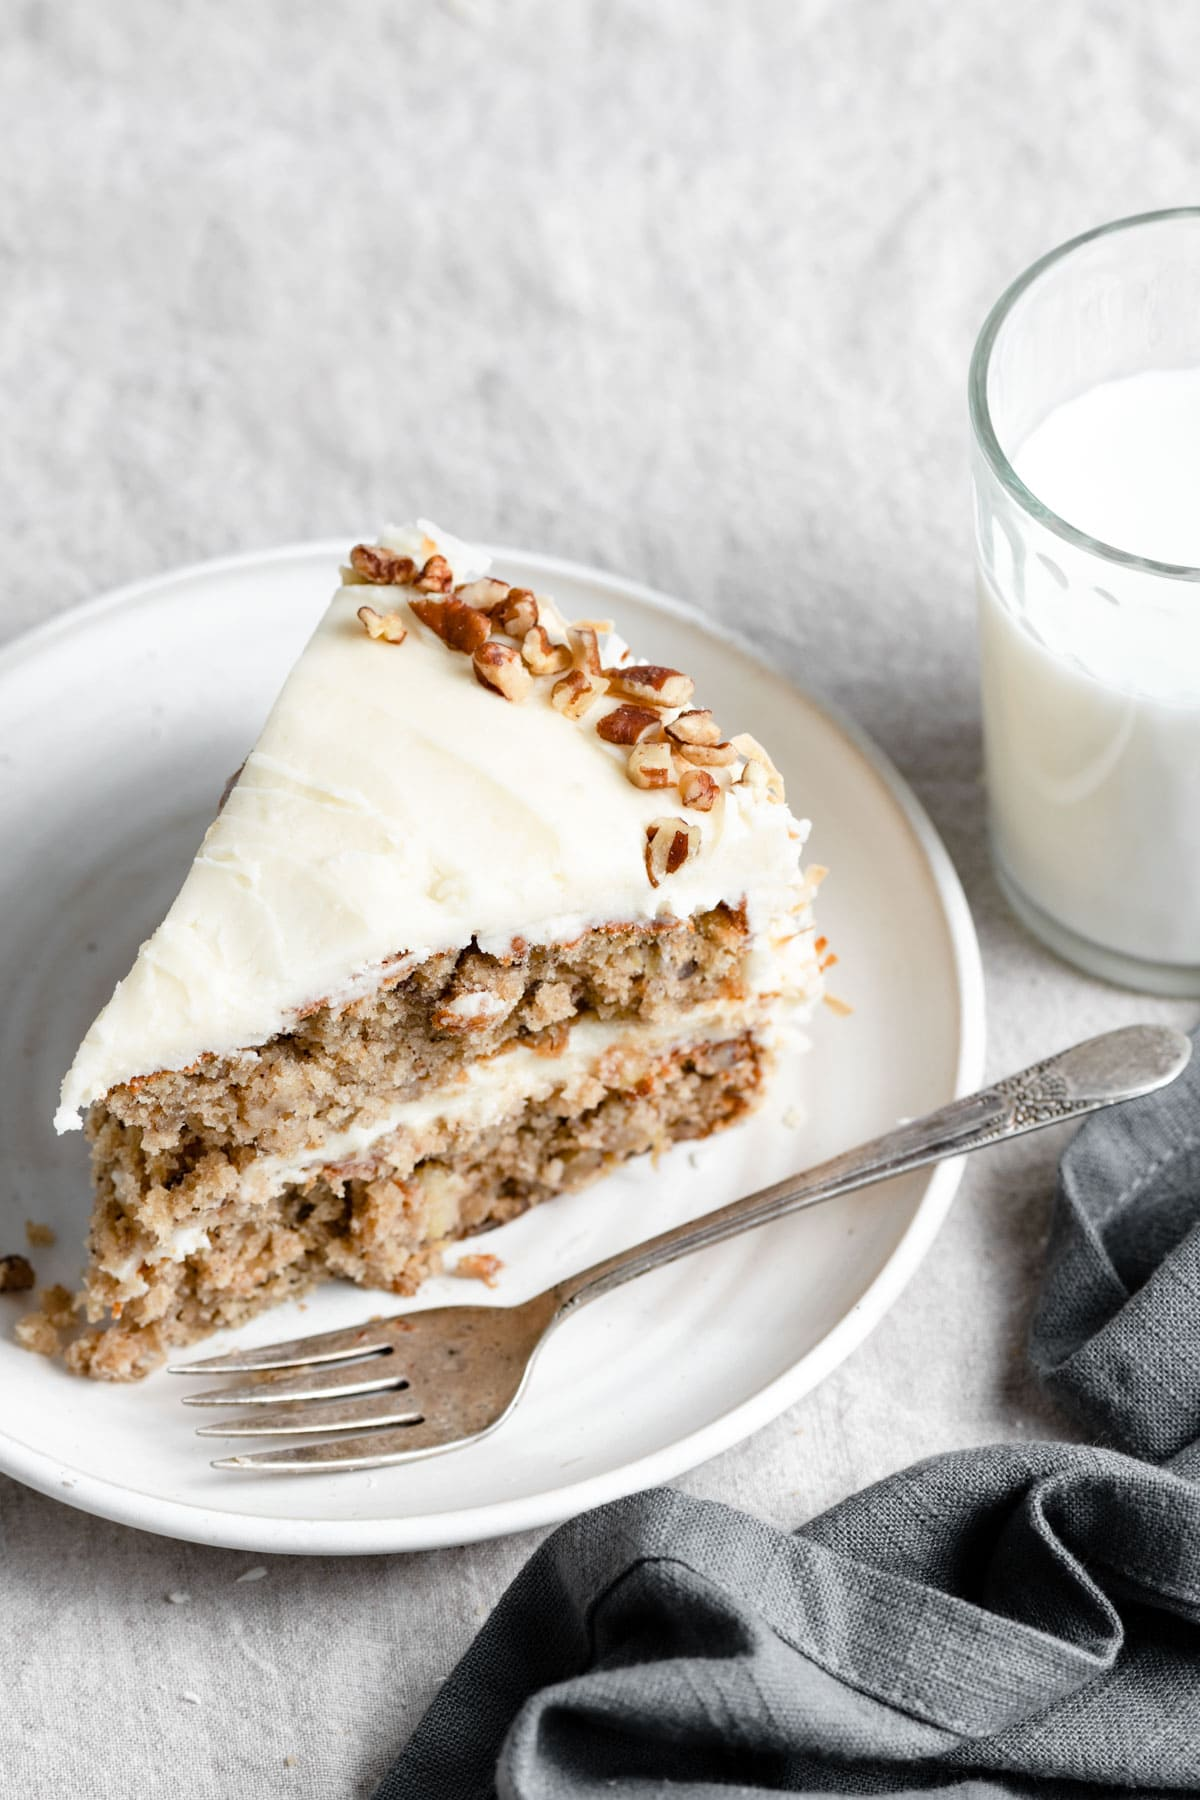 Slice of Hummingbird Cake on a white dessert plate with a fork. Next to they plate there is a dark grey napkin and glass of milk in the background.